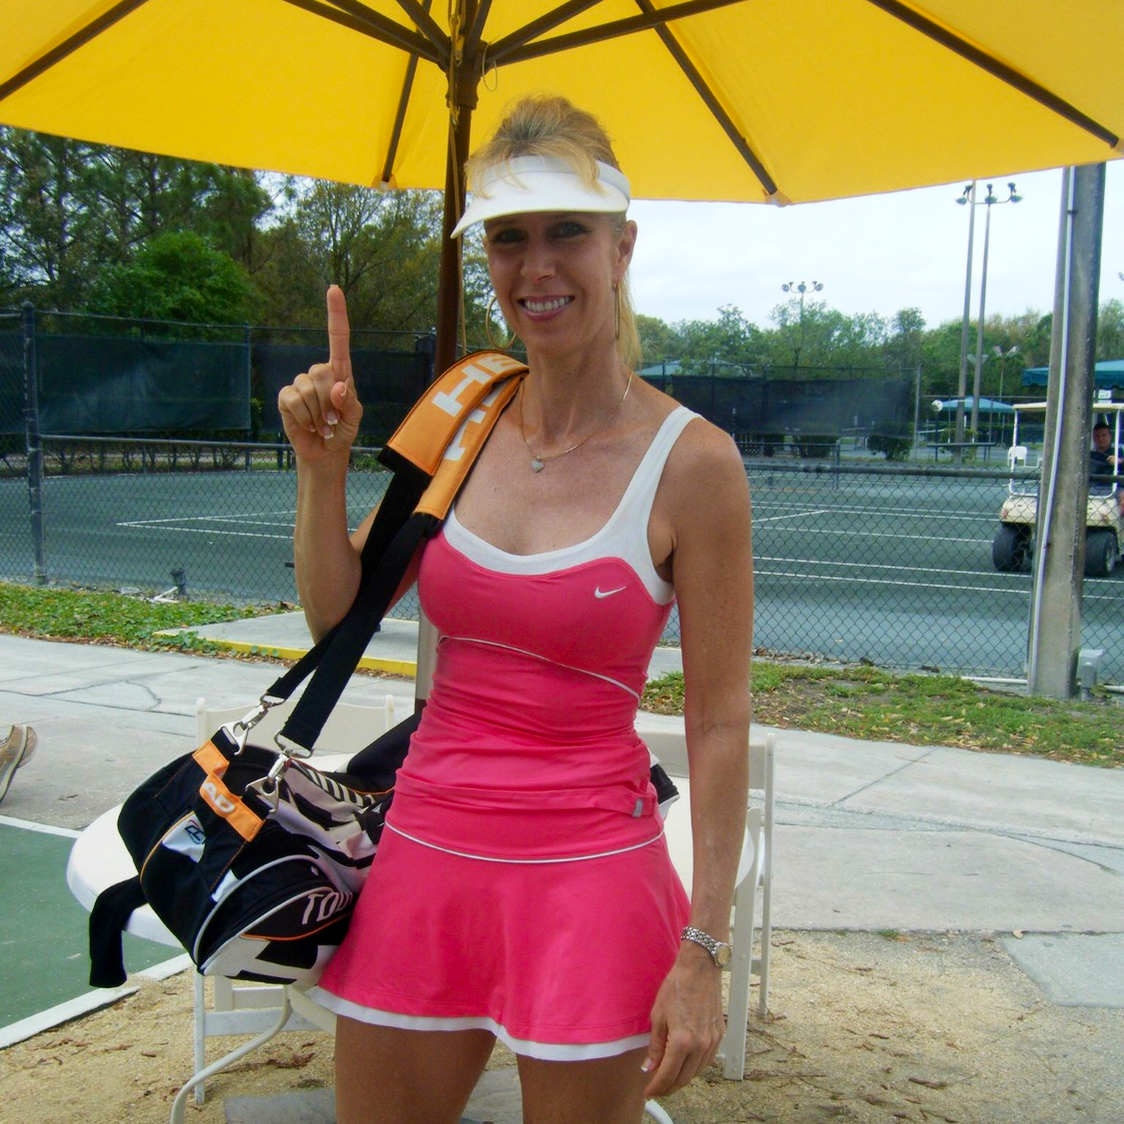 Beth S. teaches tennis lessons in Clearwater, FL